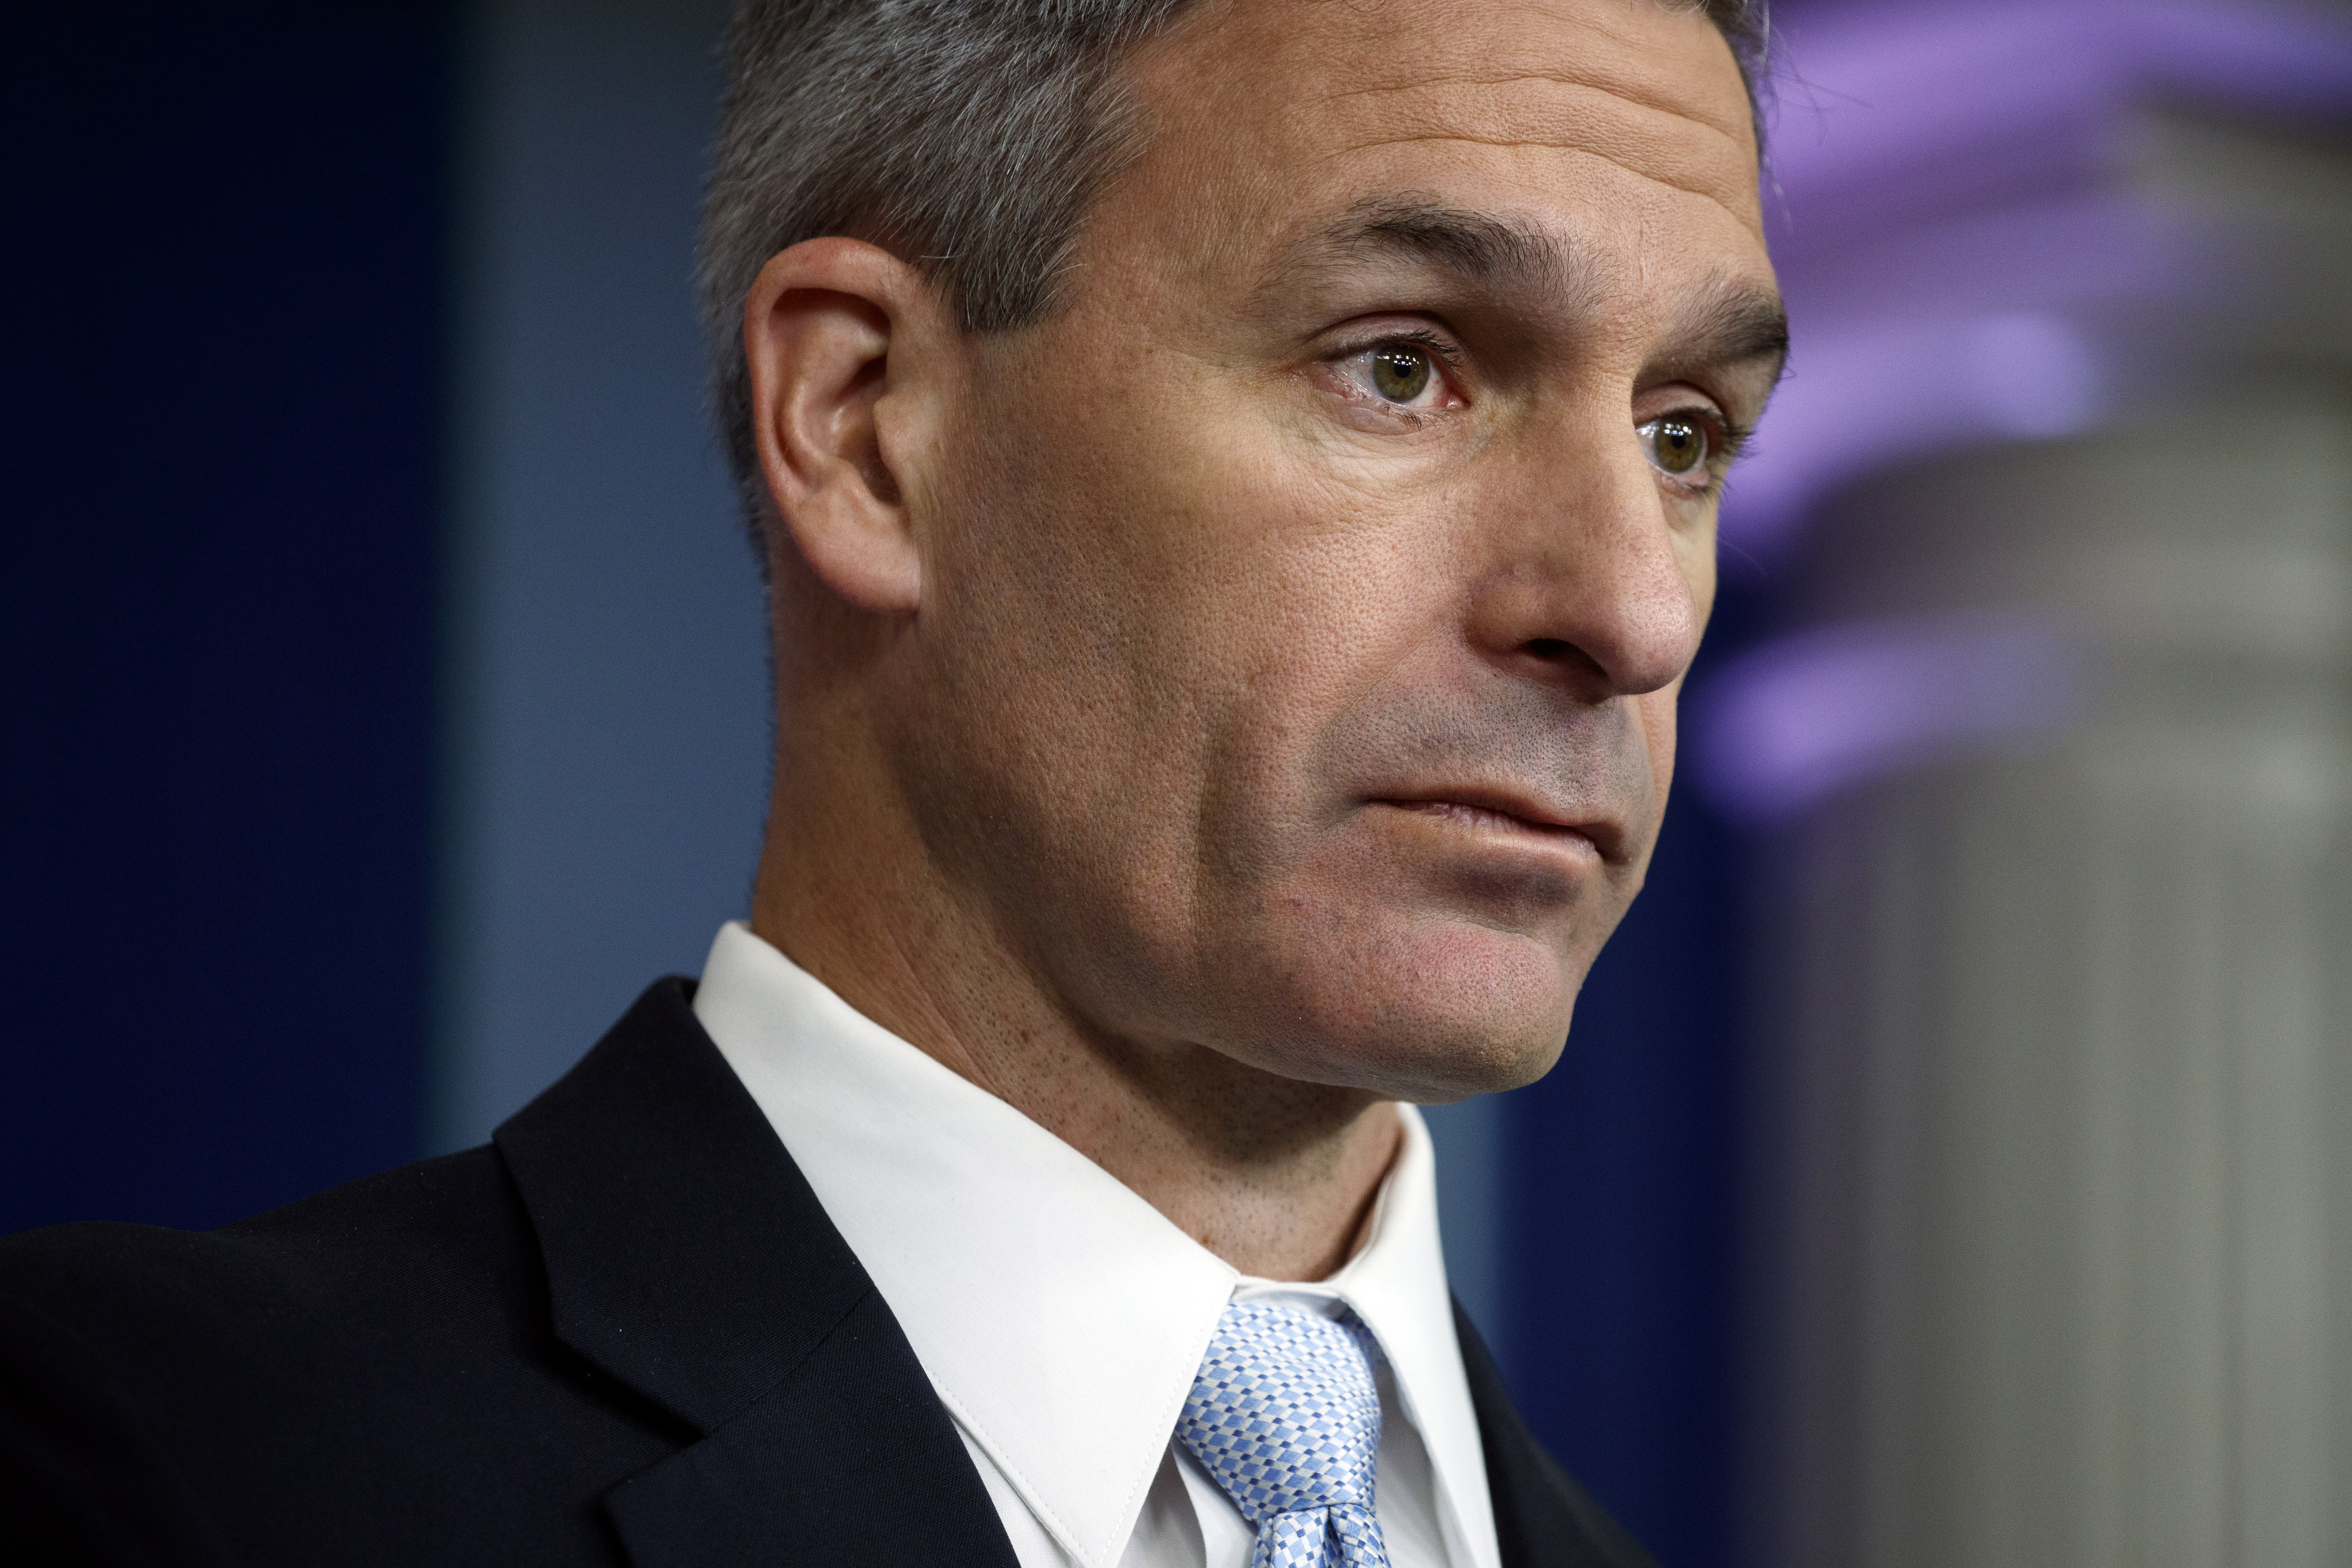 Ken Cuccinelli unloads on Paul Ryan, says he ruined chance to solve immigration crisis